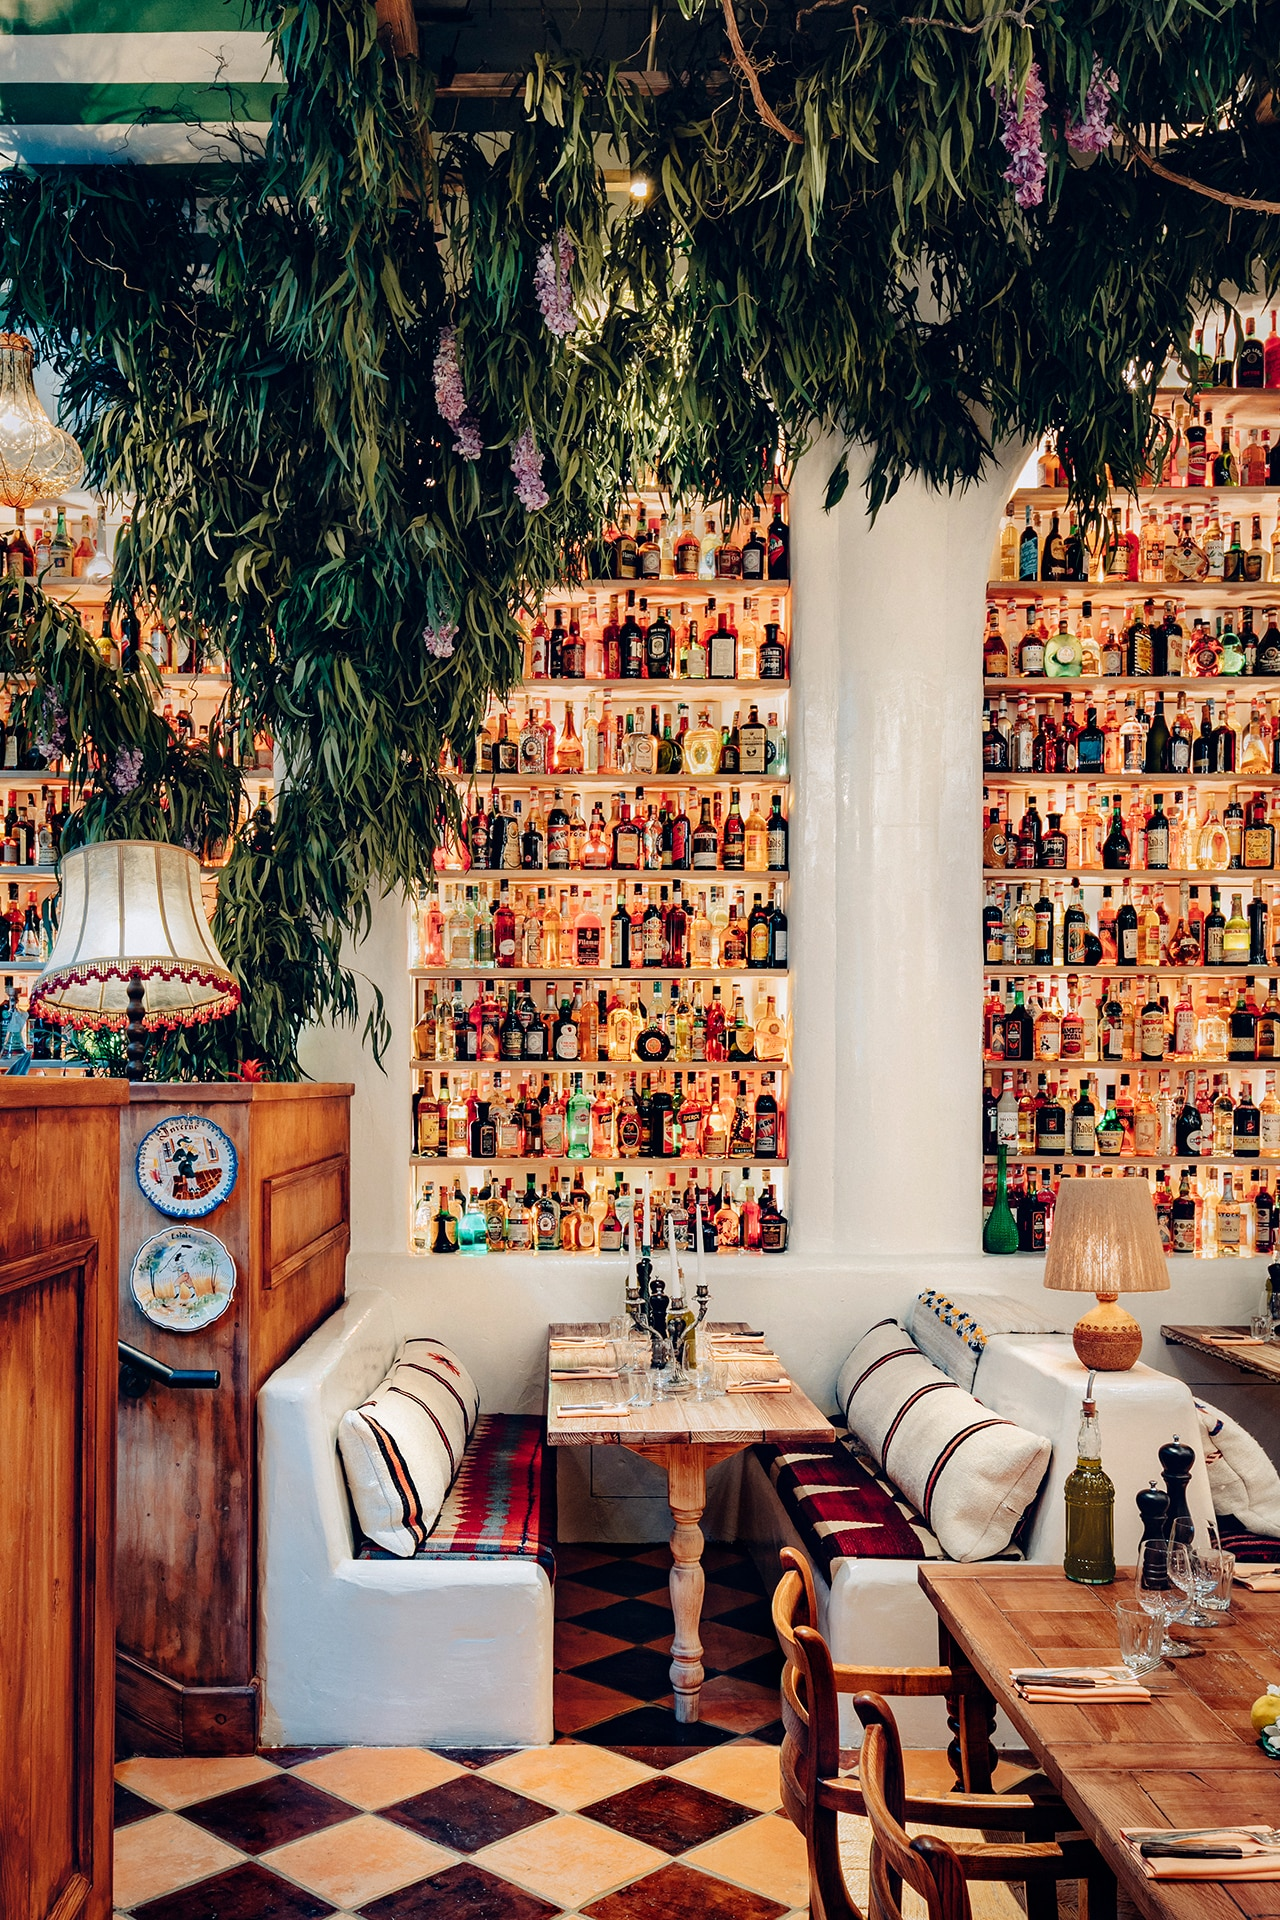 This big-hearted Italian restaurant is full of quirky vintage finds